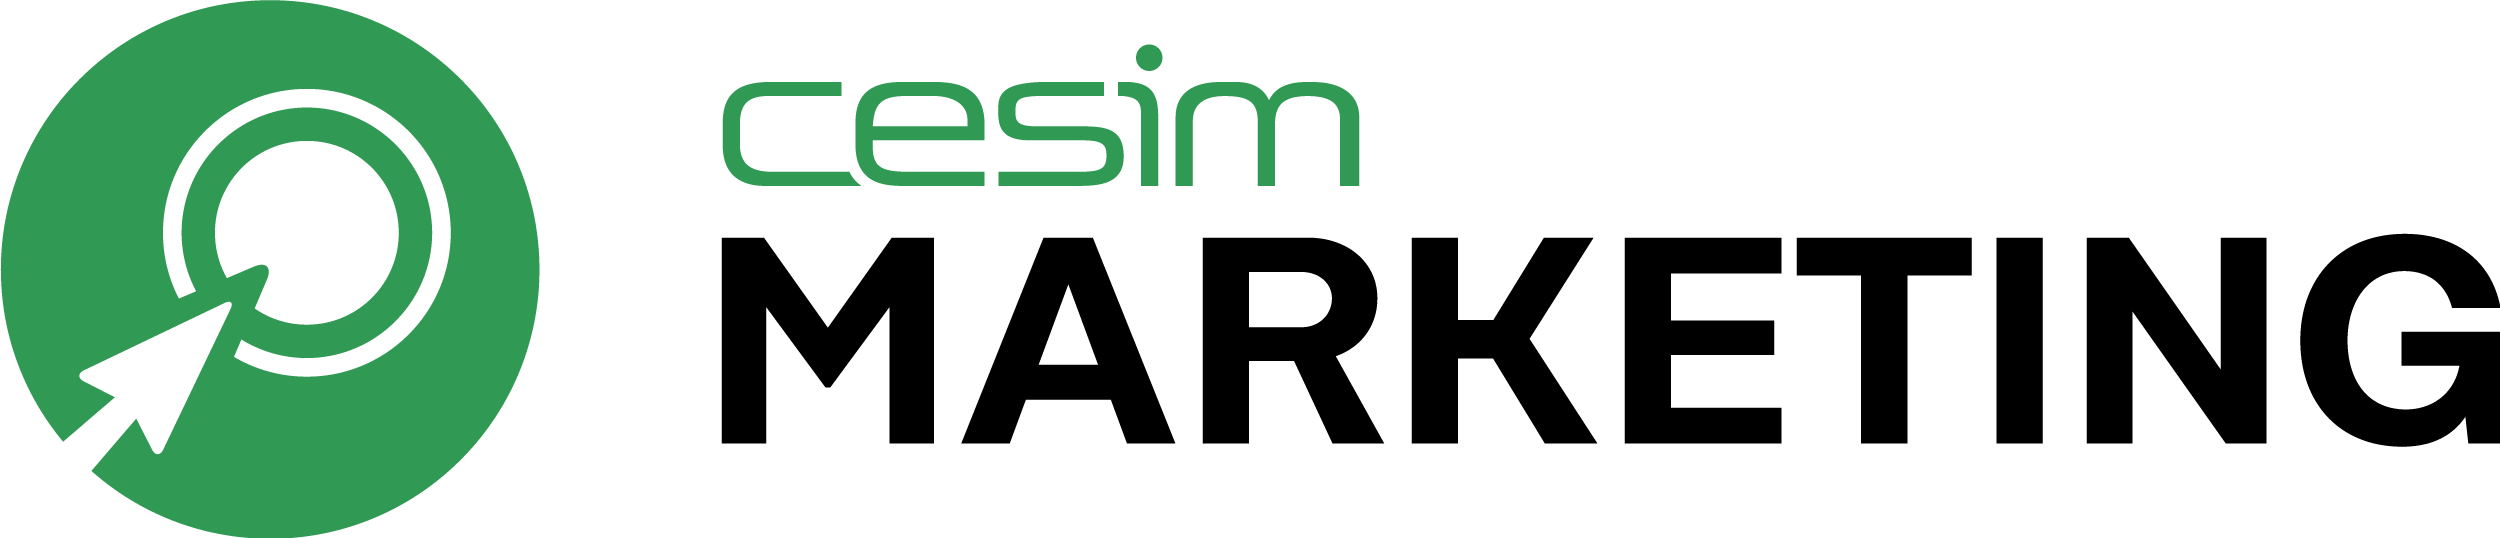 market and customers report of cesim simbrand Cesim simbrand develops students understanding and command of the whole marketing decision-making process the simulation covers marketing topics including segmentation, positioning, distribution channel investments, advertising budget allocation, after sales services, pricing, sales forecasting, marketing research, competitor analysis.